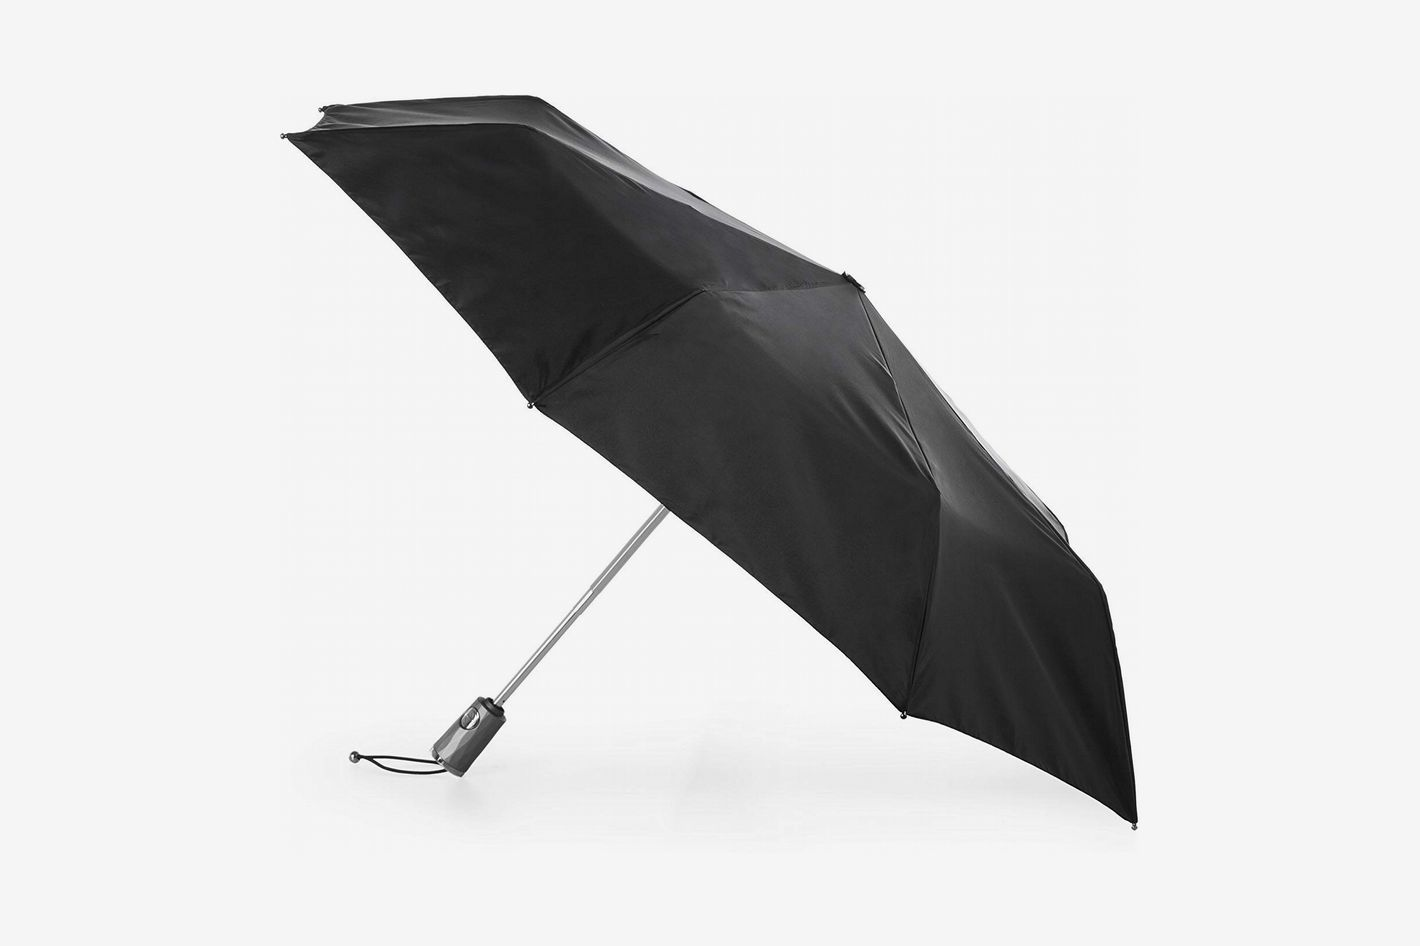 f761a7d88a5e The 37 Best Umbrellas You Can Buy 2019